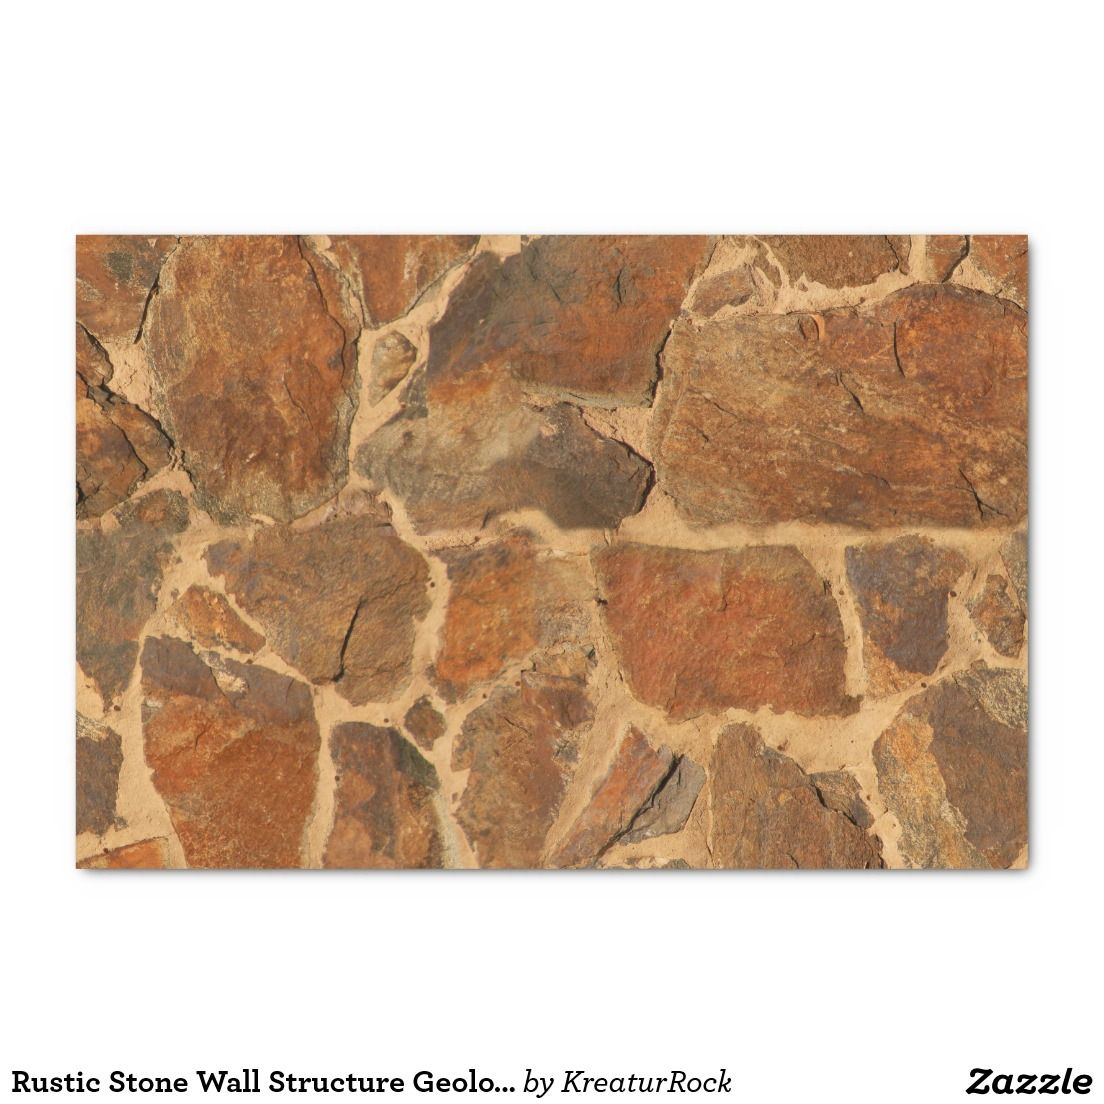 Rustic Stone Wall Structure Geology Warm Glow Tissue Paper